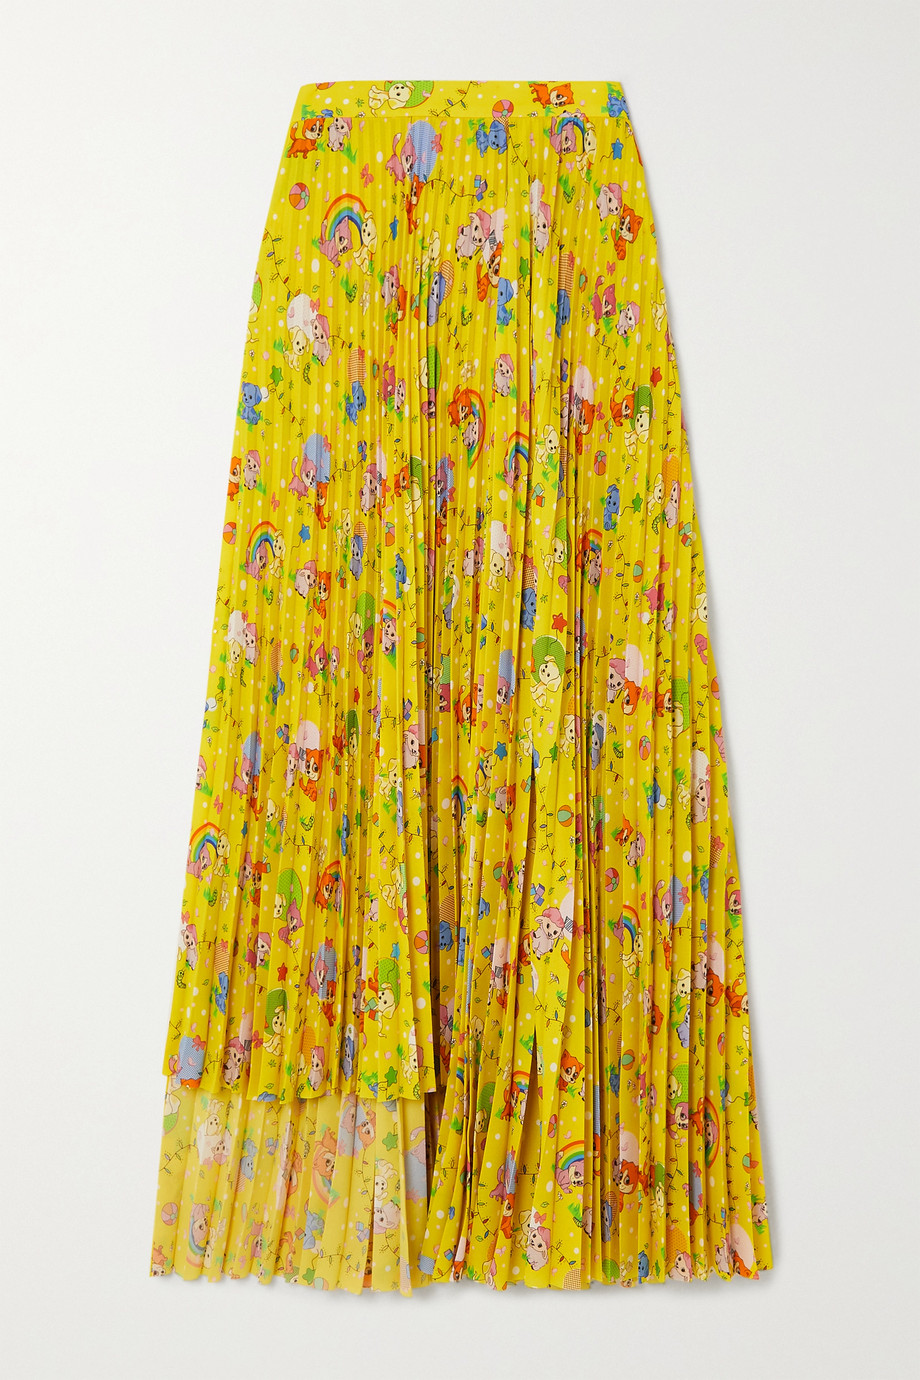 Balenciaga Puppies and Friends asymmetric pleated printed crepe skirt